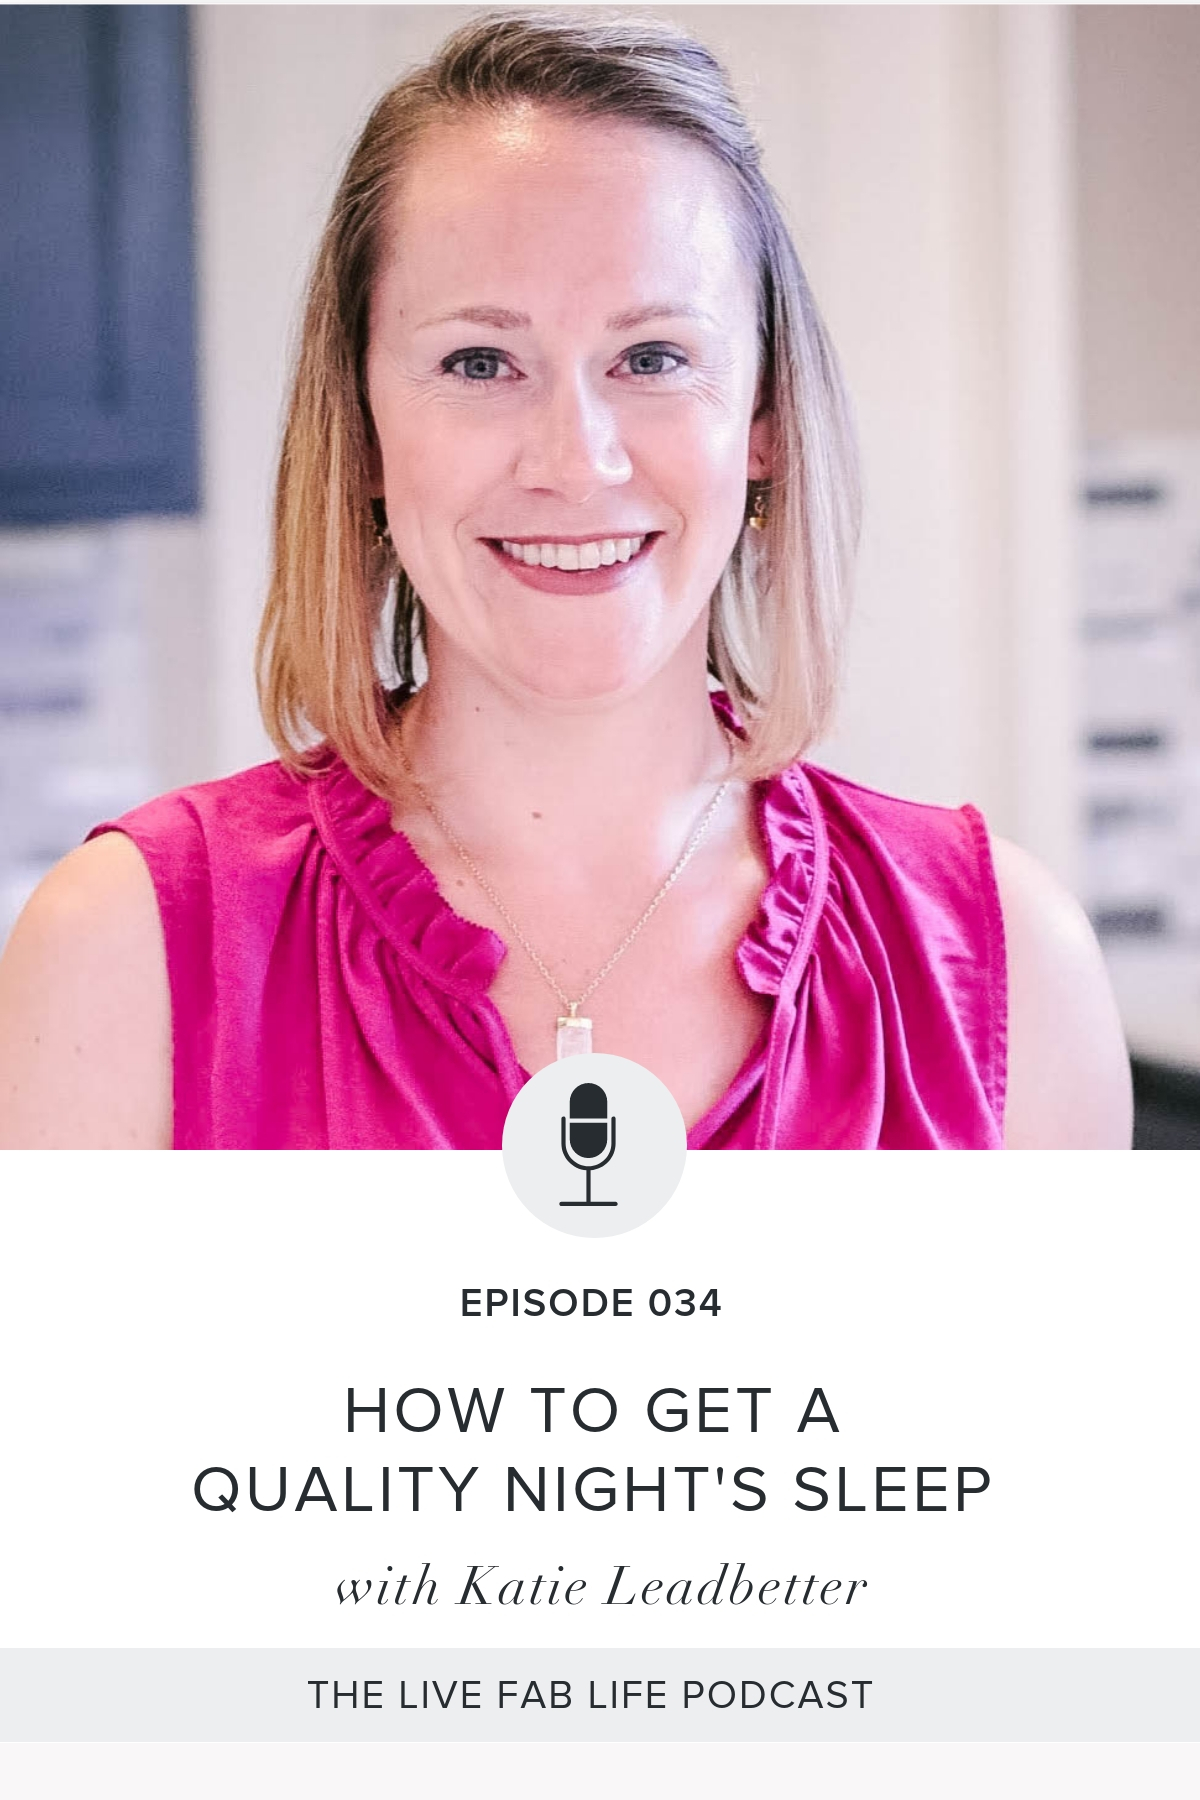 Episode 034: How to Get A Quality Night's Sleep with Katie Leadbetter